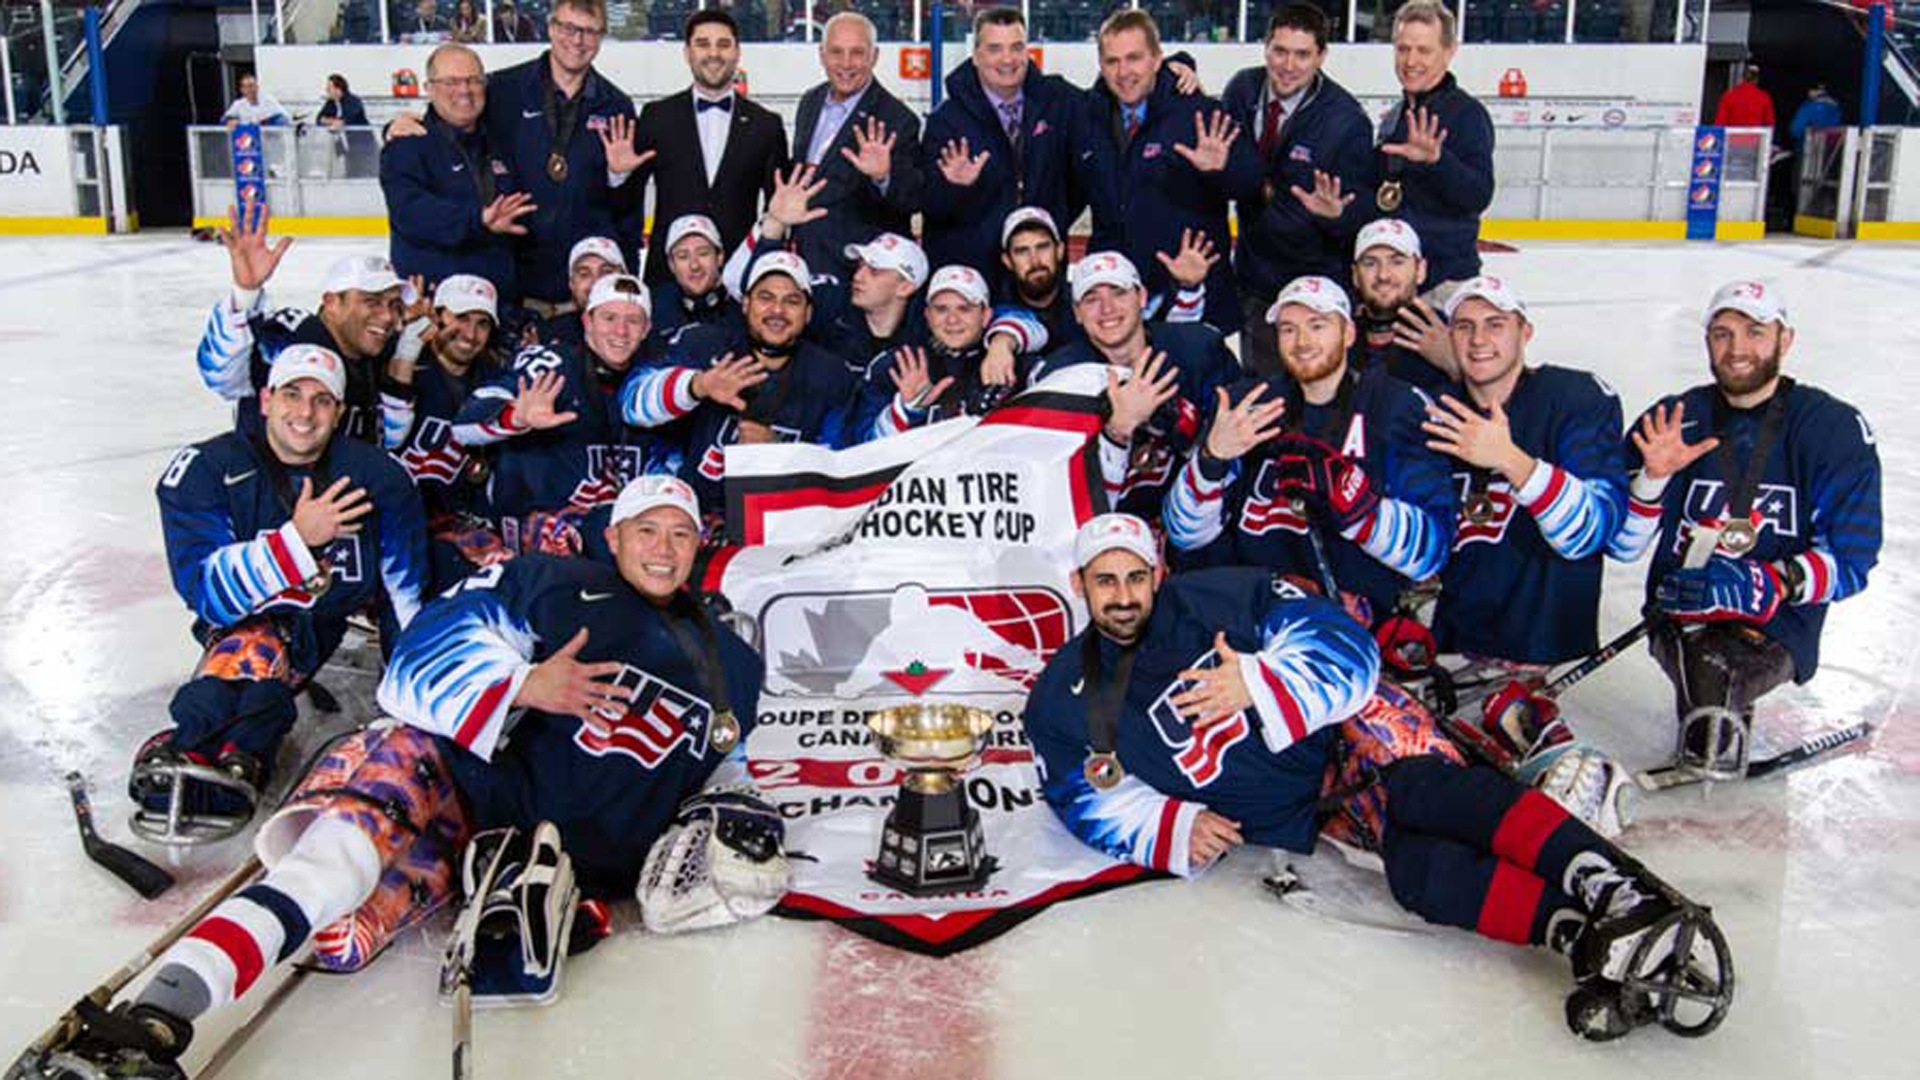 USA Edges Canada To Capture Para Hockey Cup Gold Medal (video)